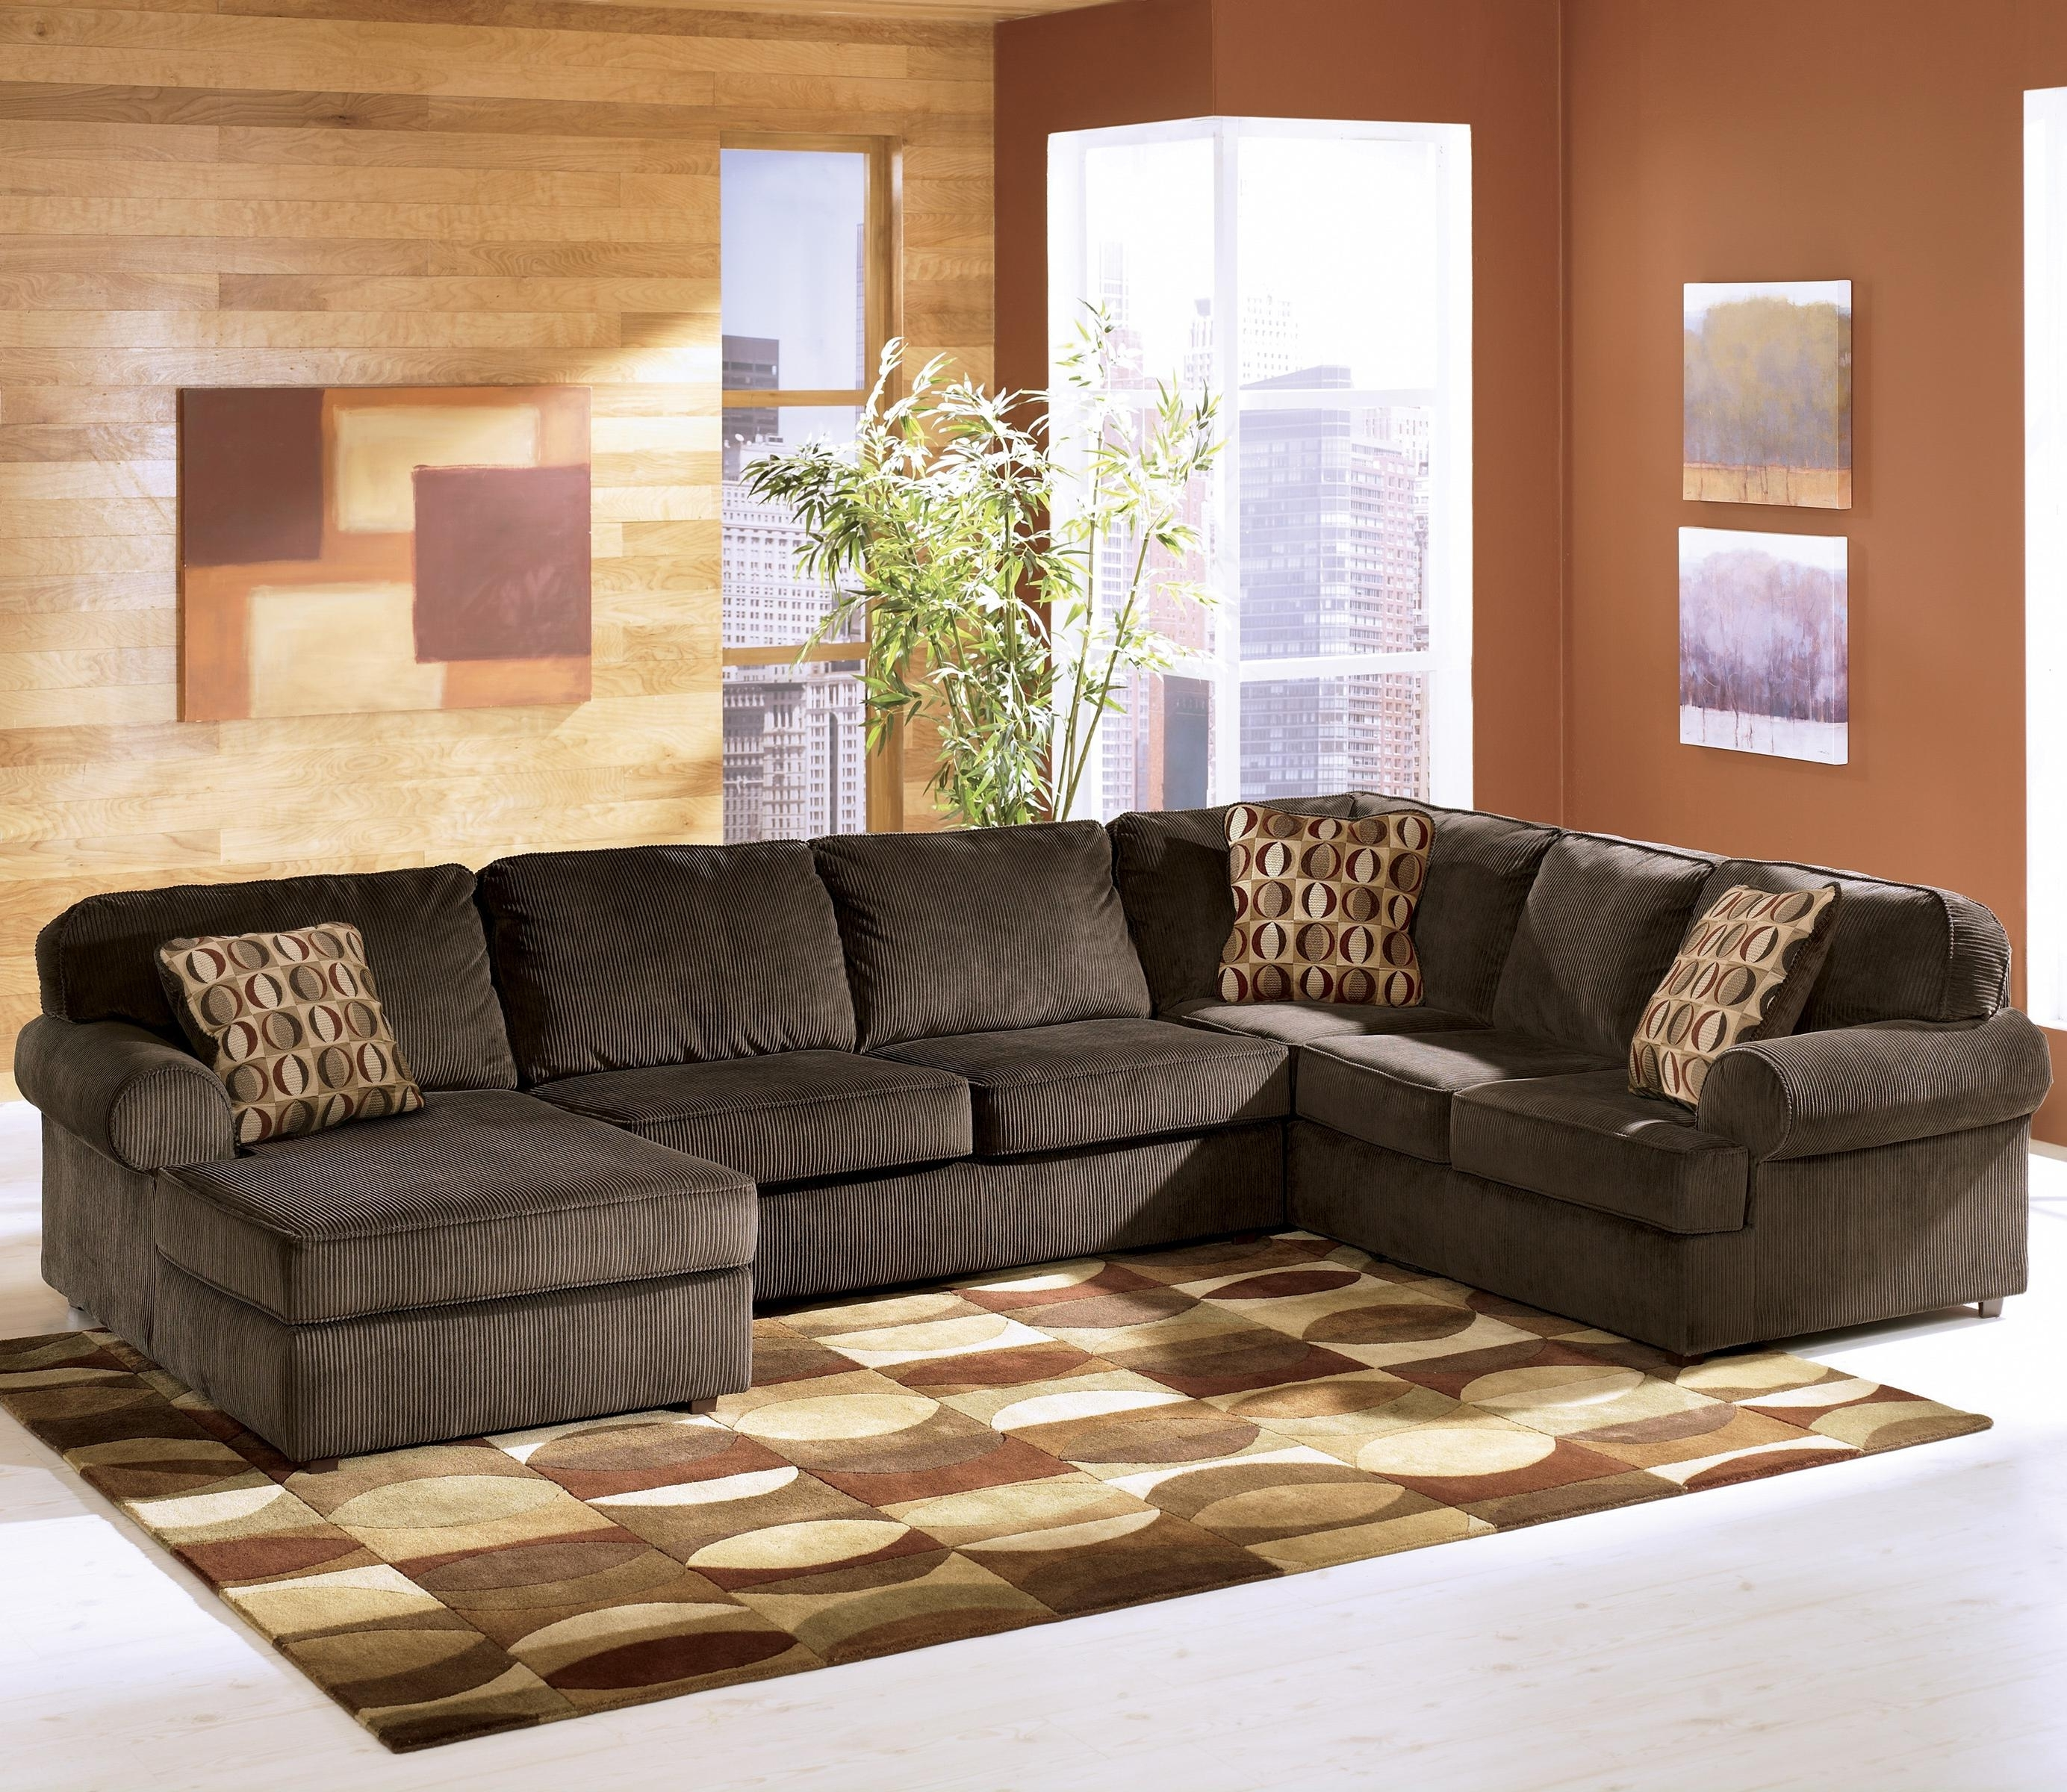 Popular Joplin Mo Sectional Sofas In Charlton Home® Brewster Sectional Https://www (View 14 of 15)